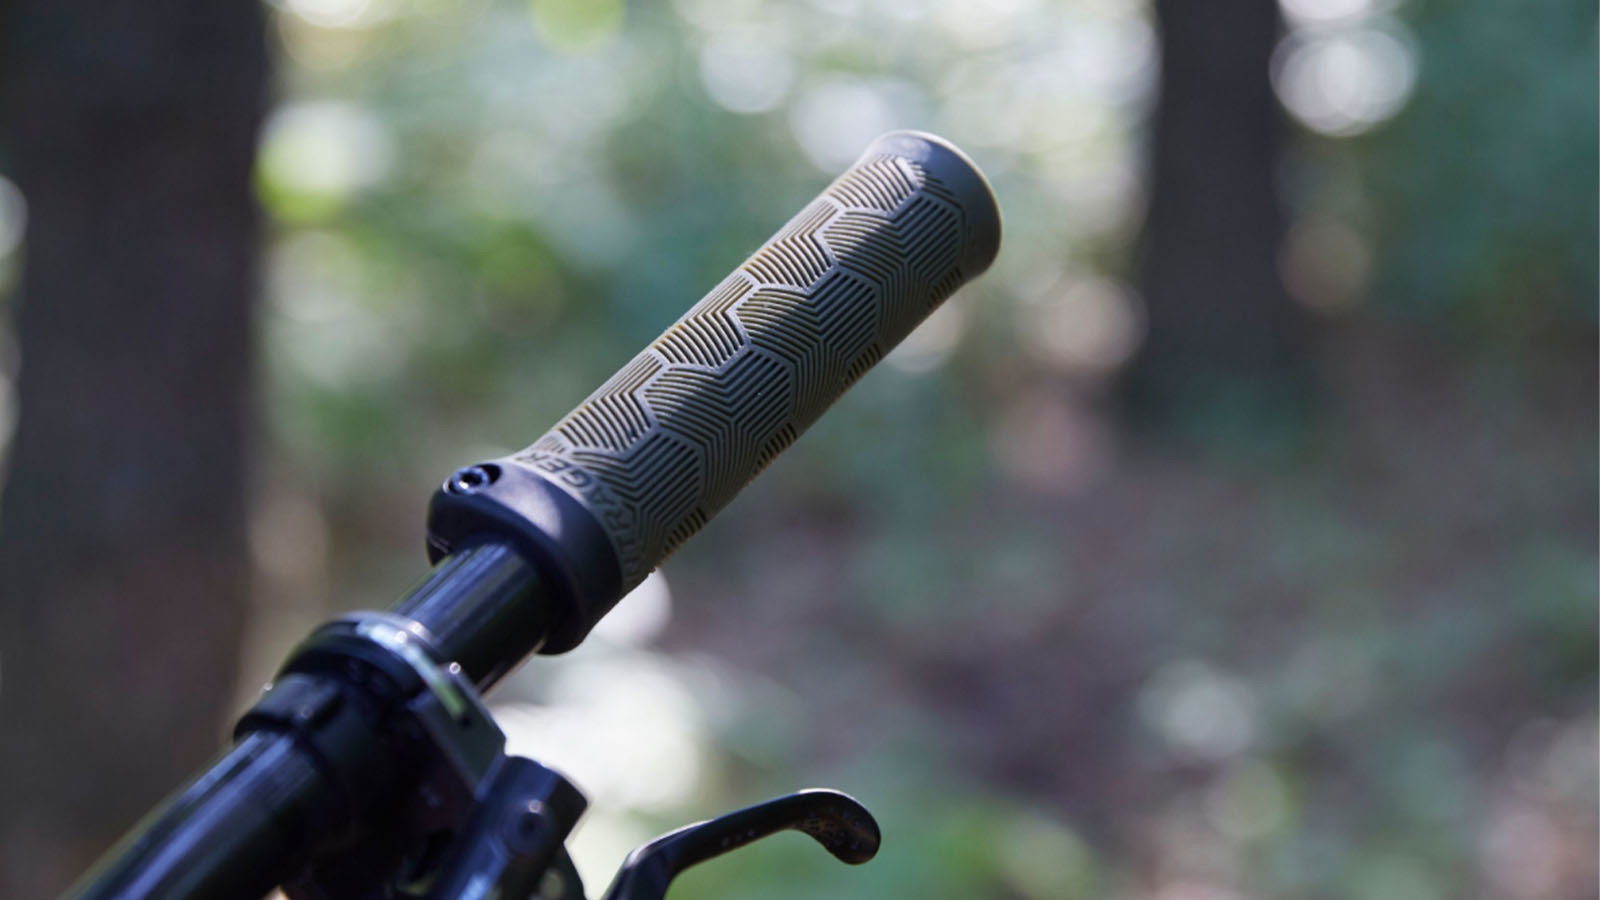 Used Fishing Nets in Your Grips - Bontrager's New XR Trail Grip